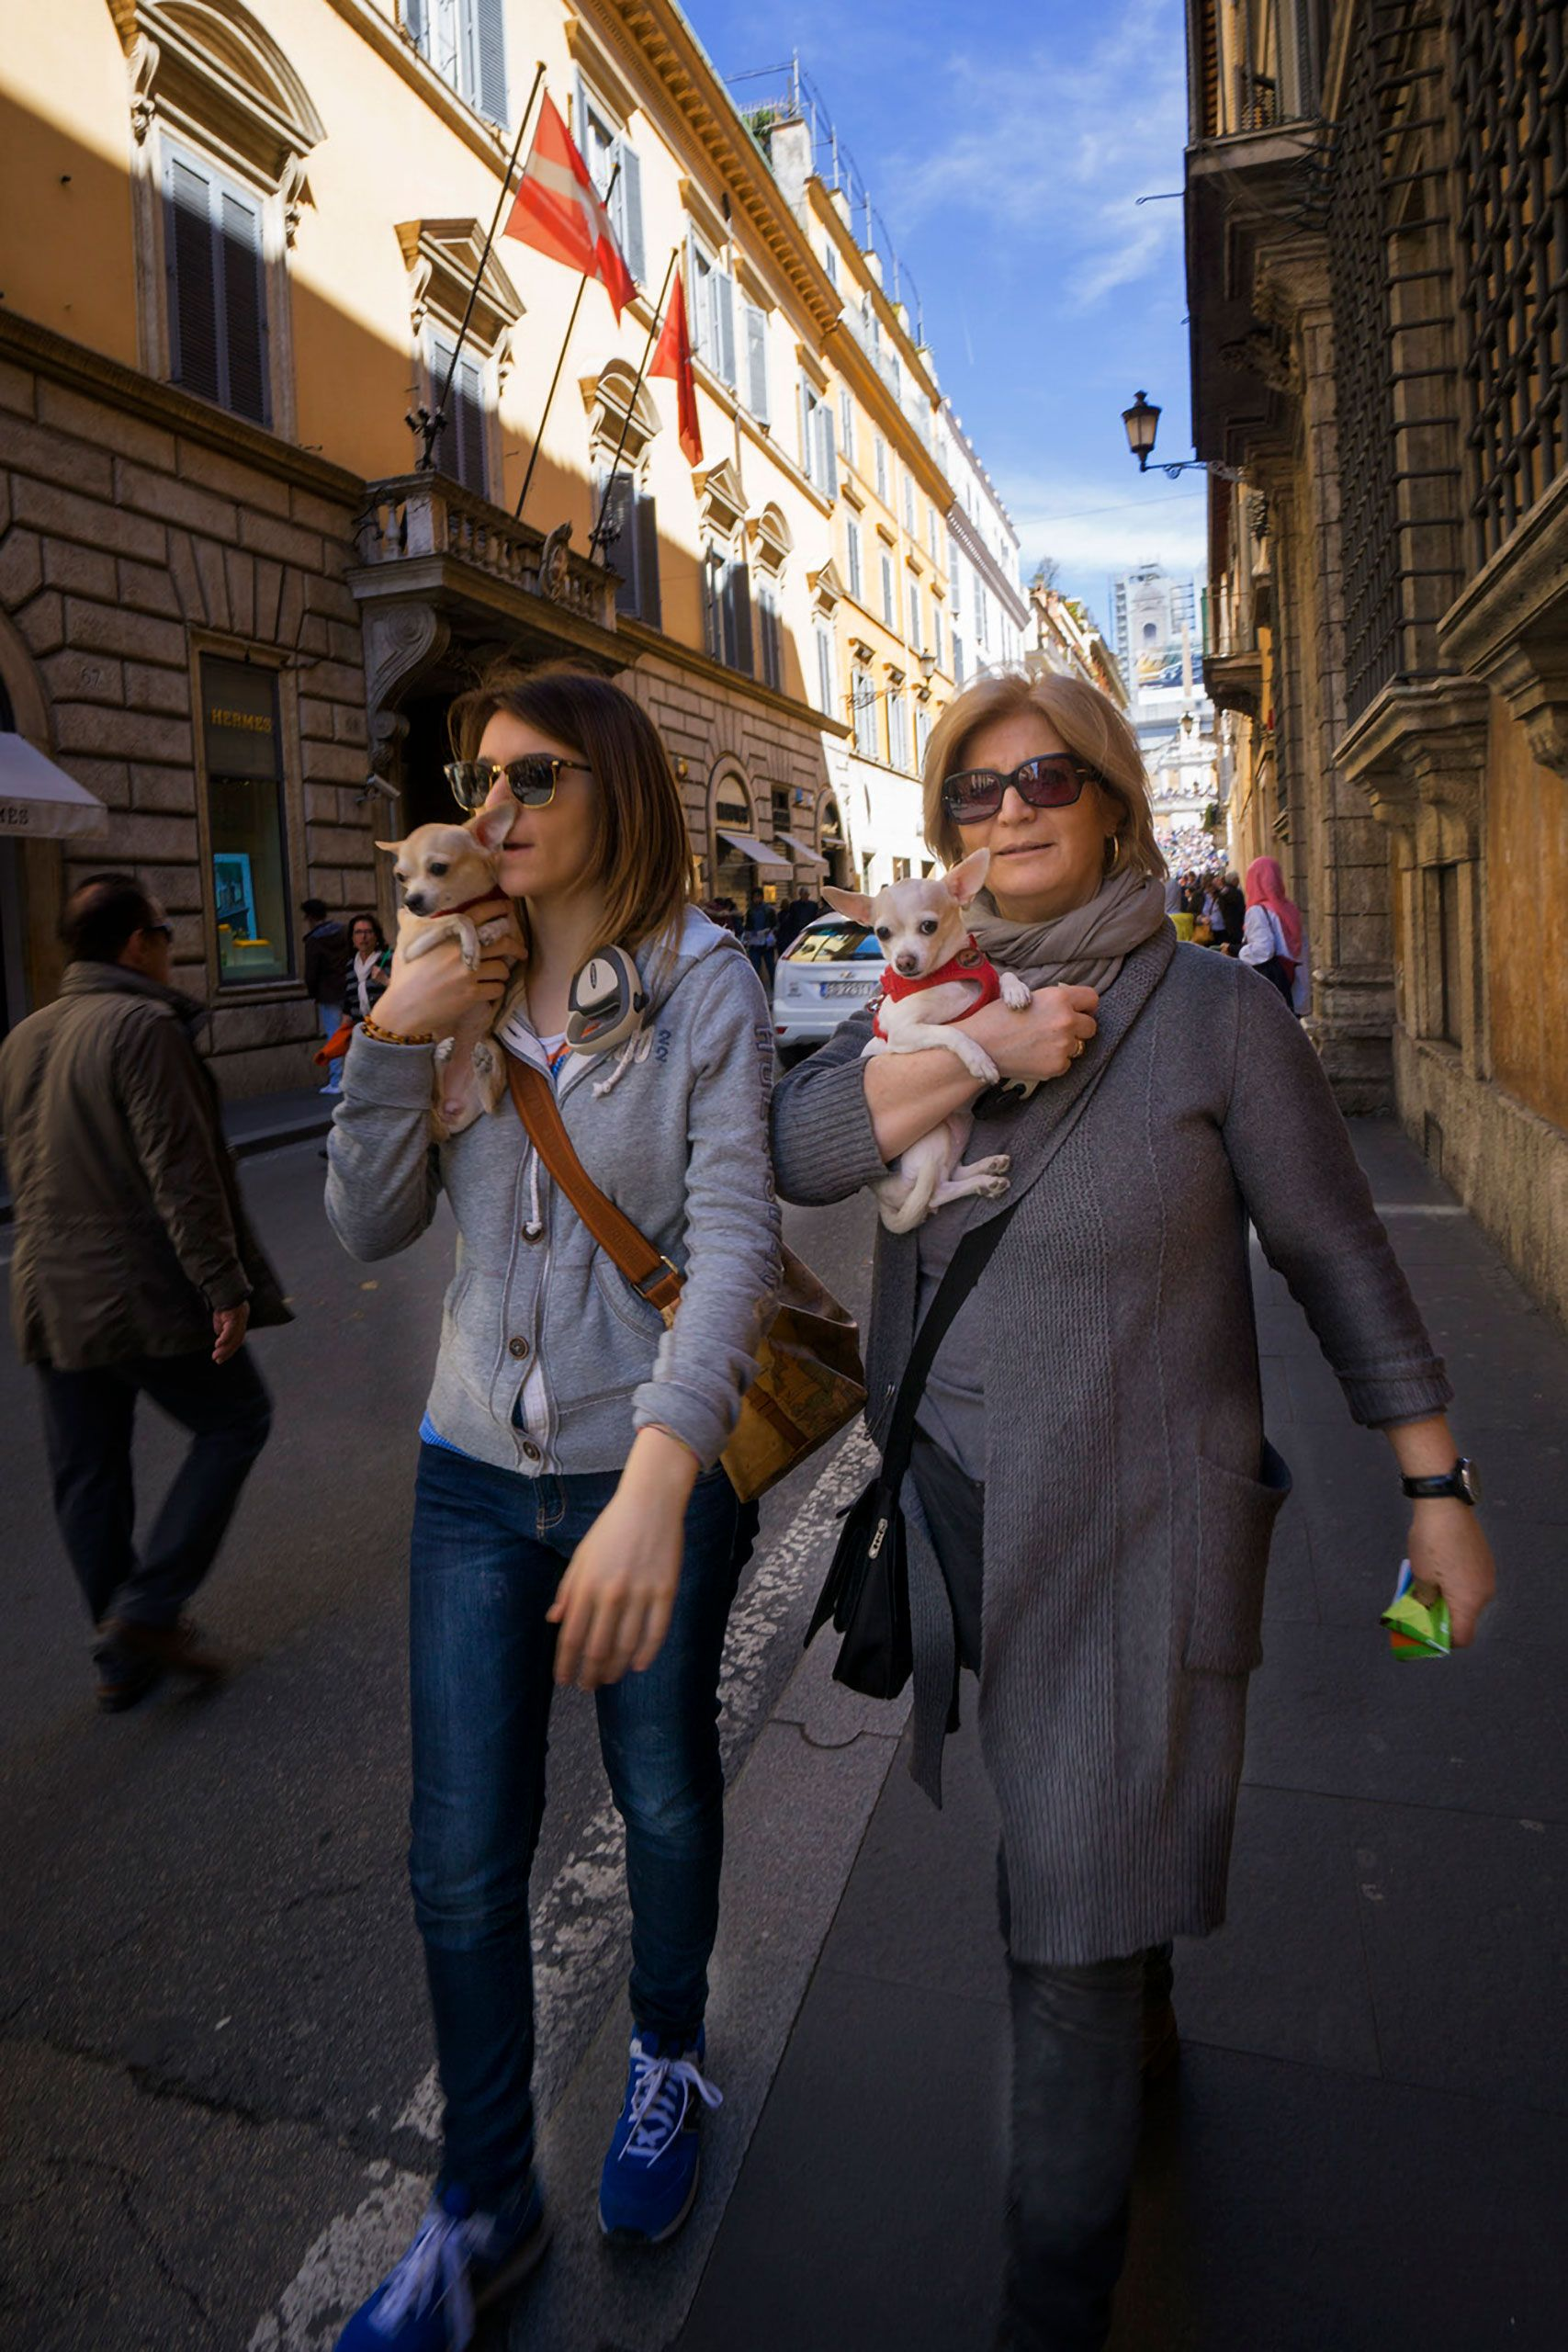 mother and daughter carrying their dogs Rome Italy